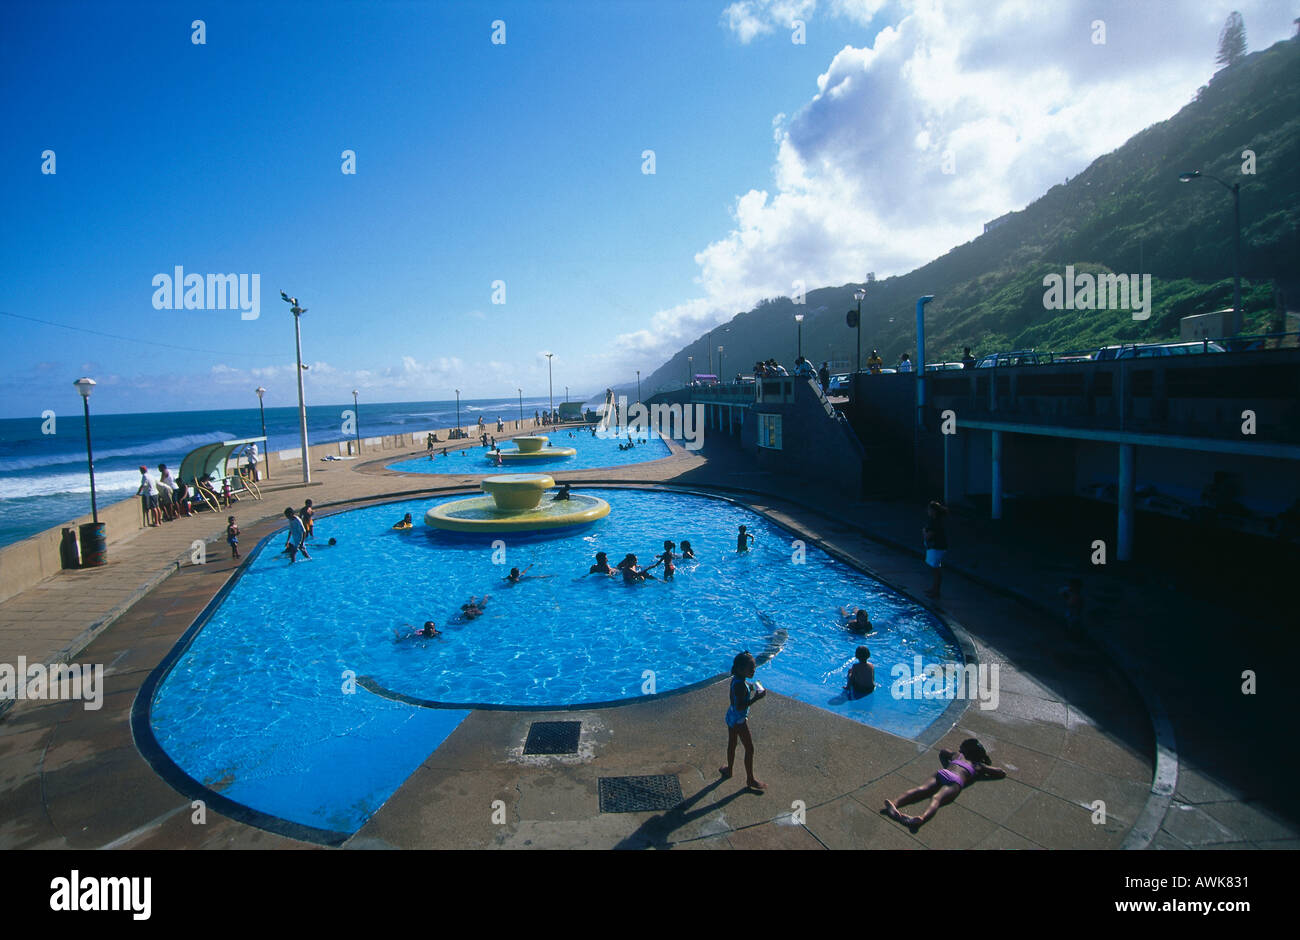 Swimming pool on beach brighton beach durban kwazulu natal south stock photo royalty free for Swimming pool covers south africa